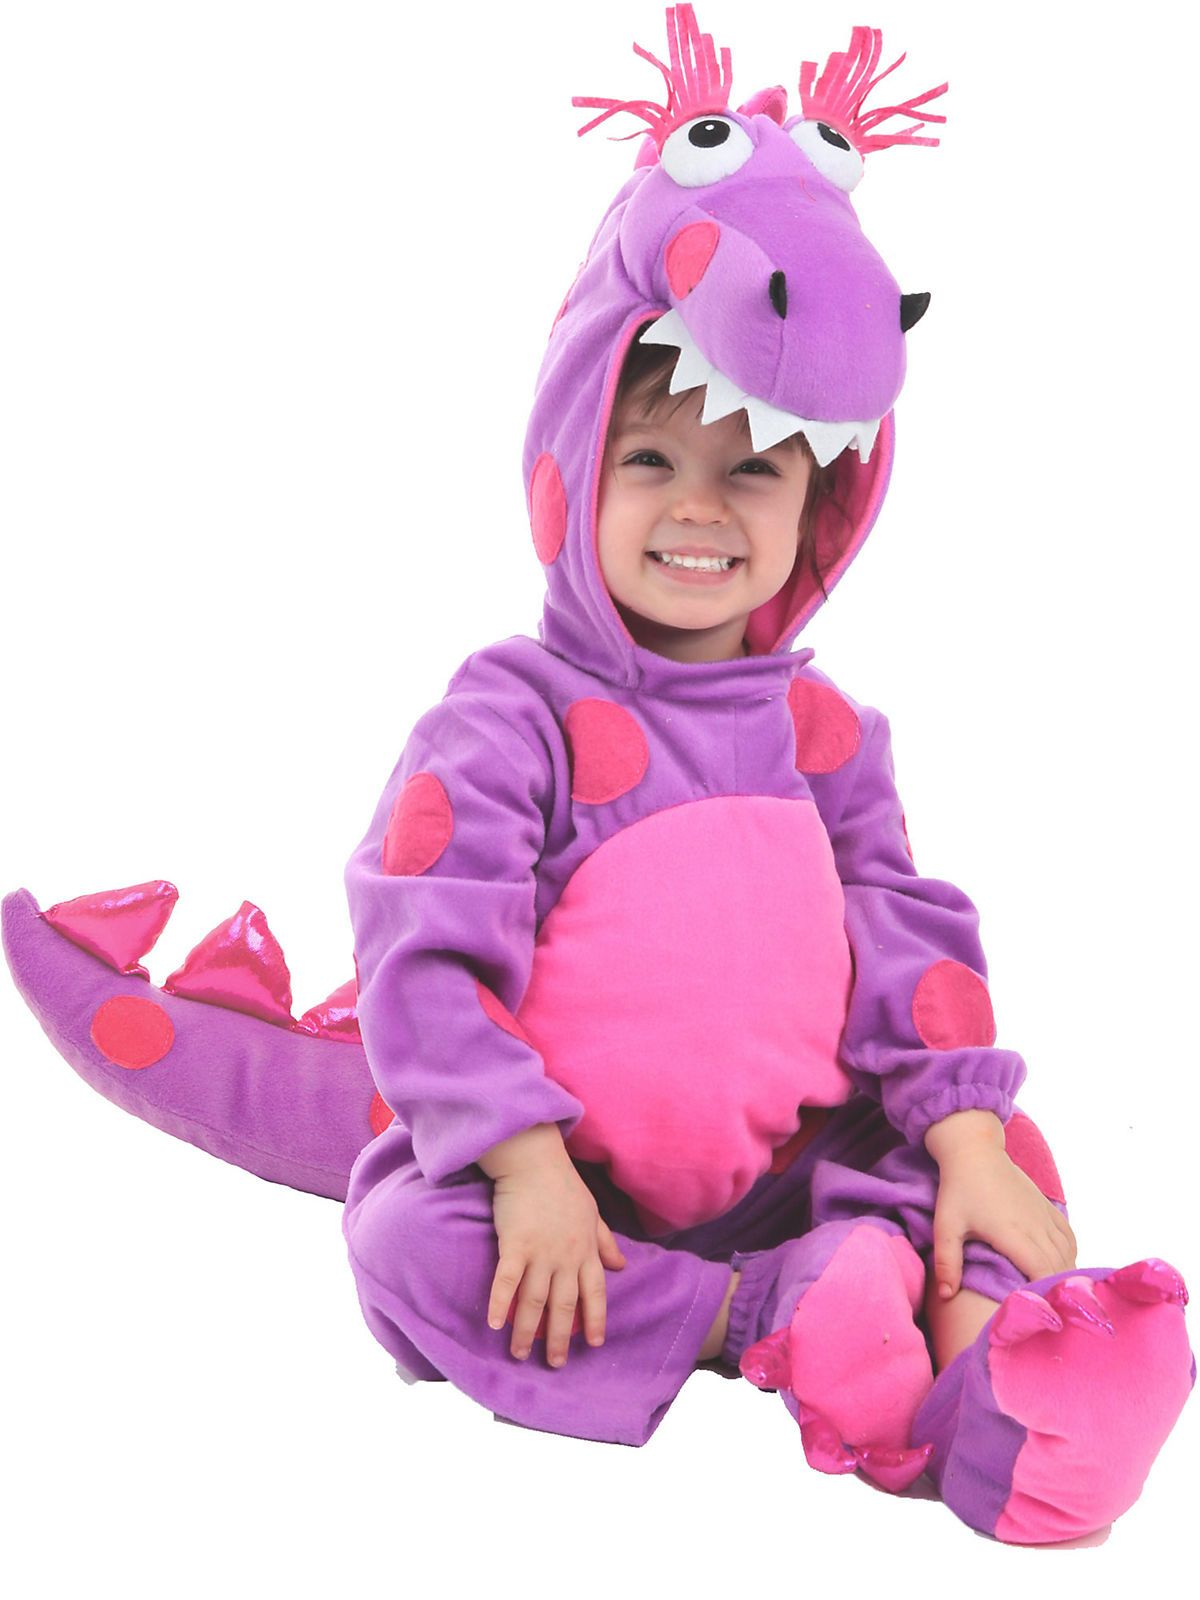 a1e5ebdca2f Teagan The Dragon Infant's-Toddler's Costume | Halloween | Toddler ...